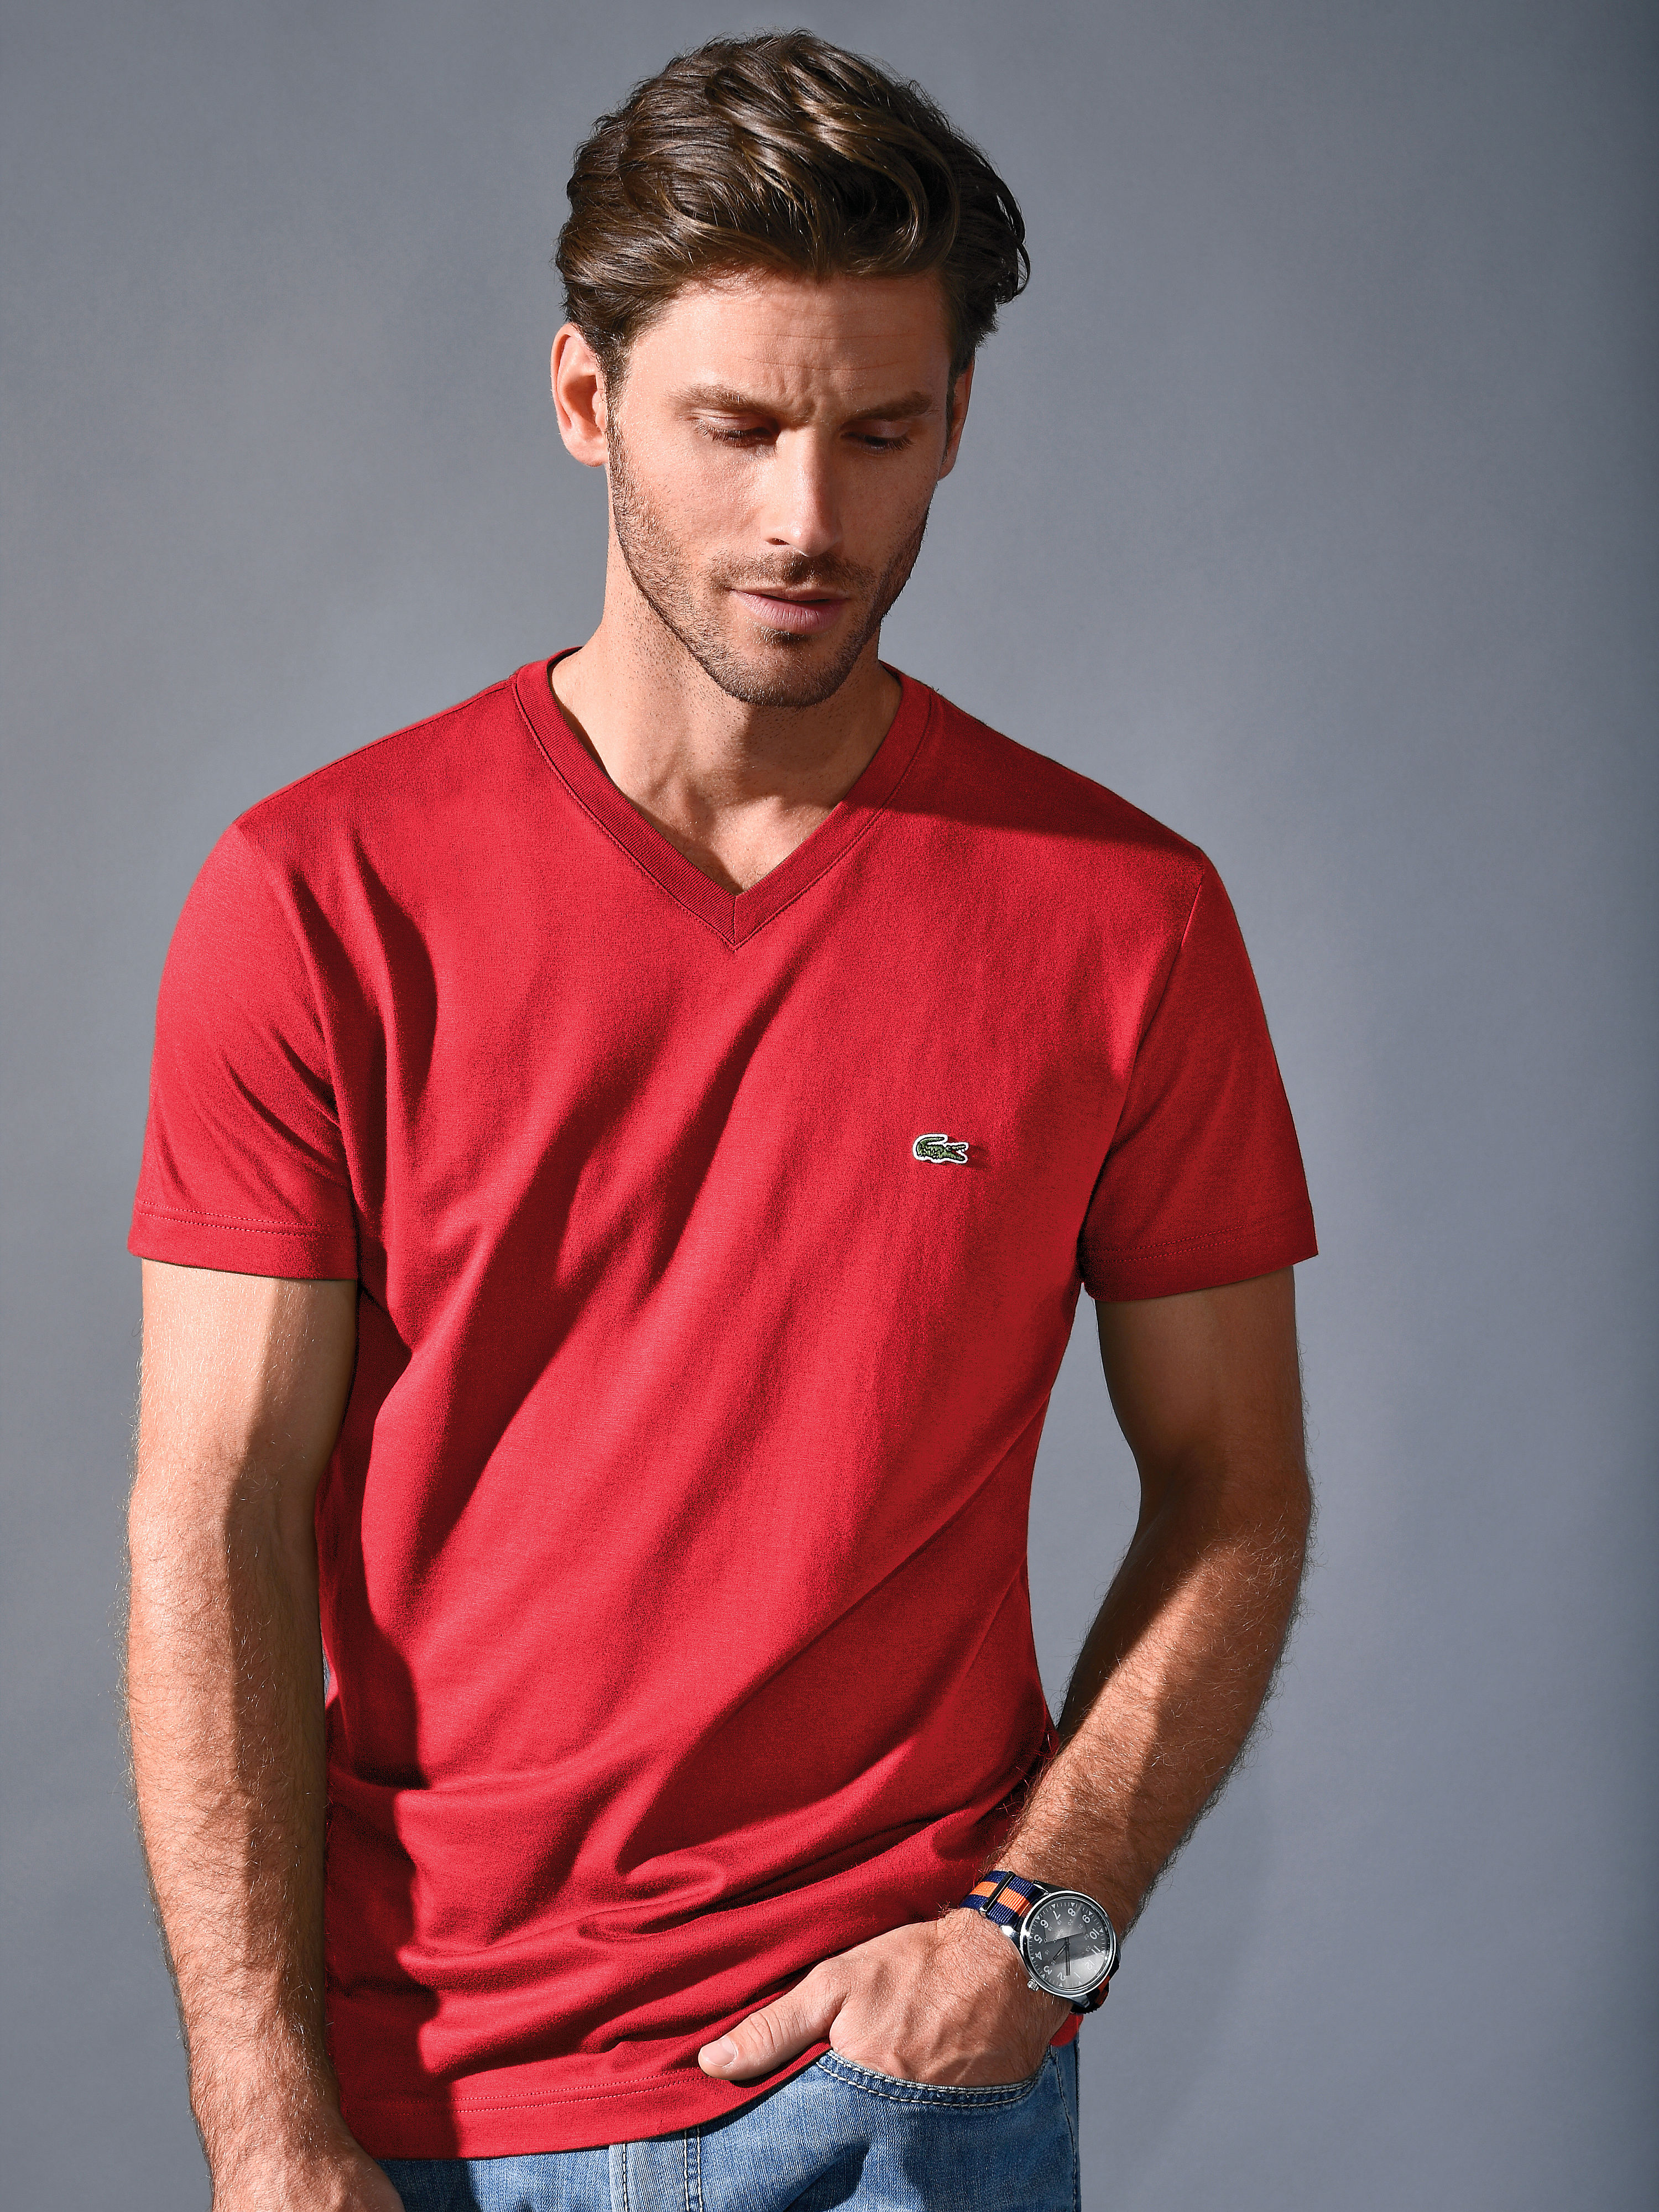 V neck Tshirt by Lacoste with 12length sleeves from Lacoste red